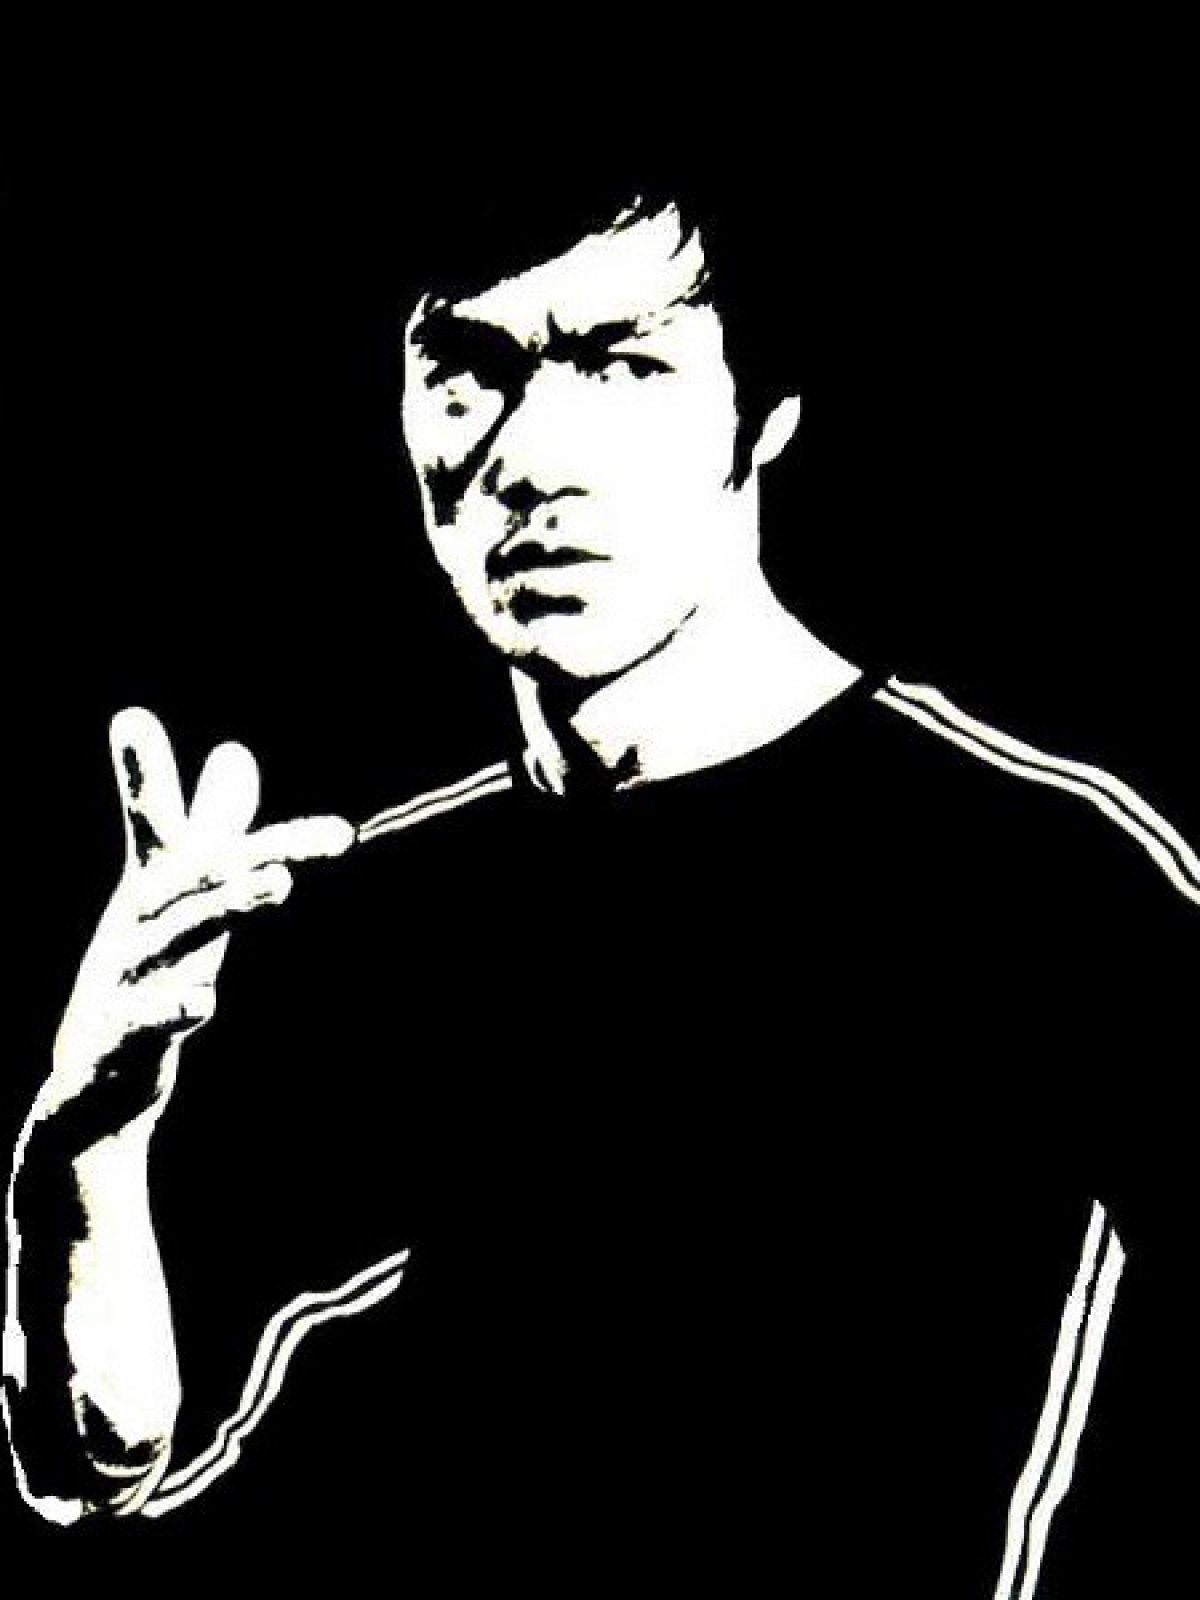 bruce lee quotes mobile wallpaper - mobiles wall